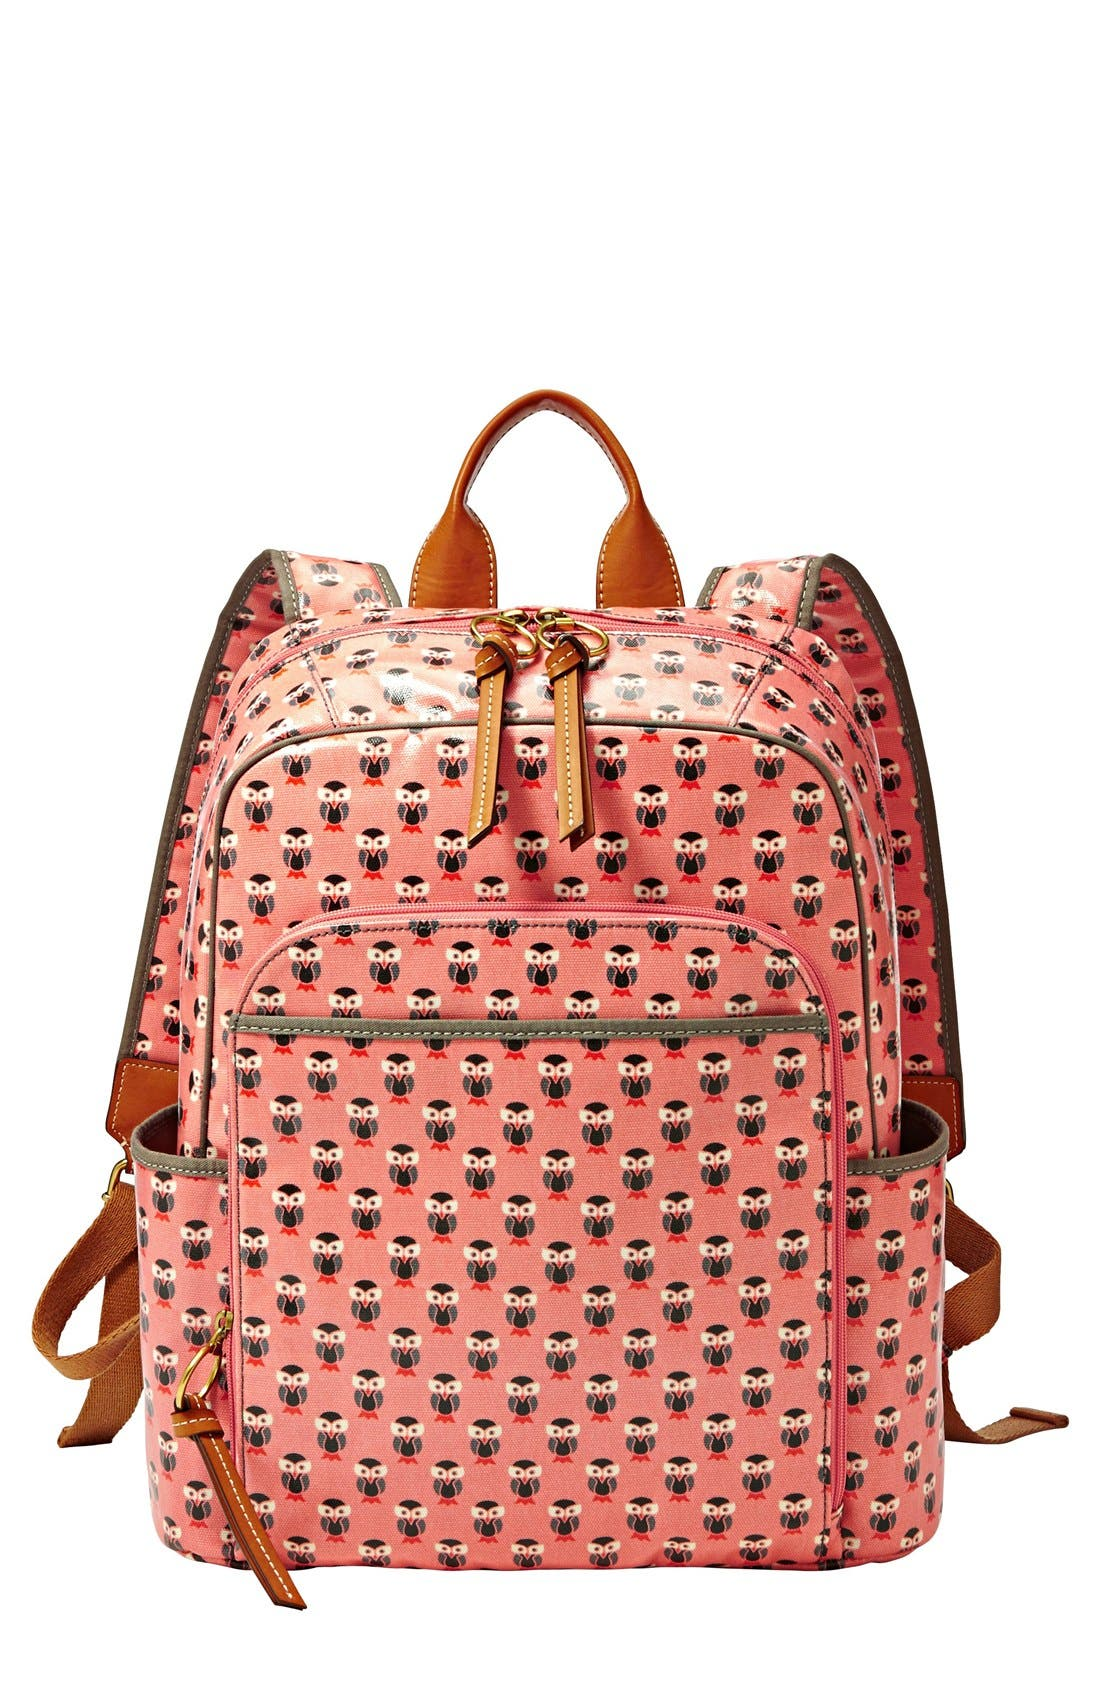 Main Image - Fossil 'Key-Per' Print Coated Canvas Backpack